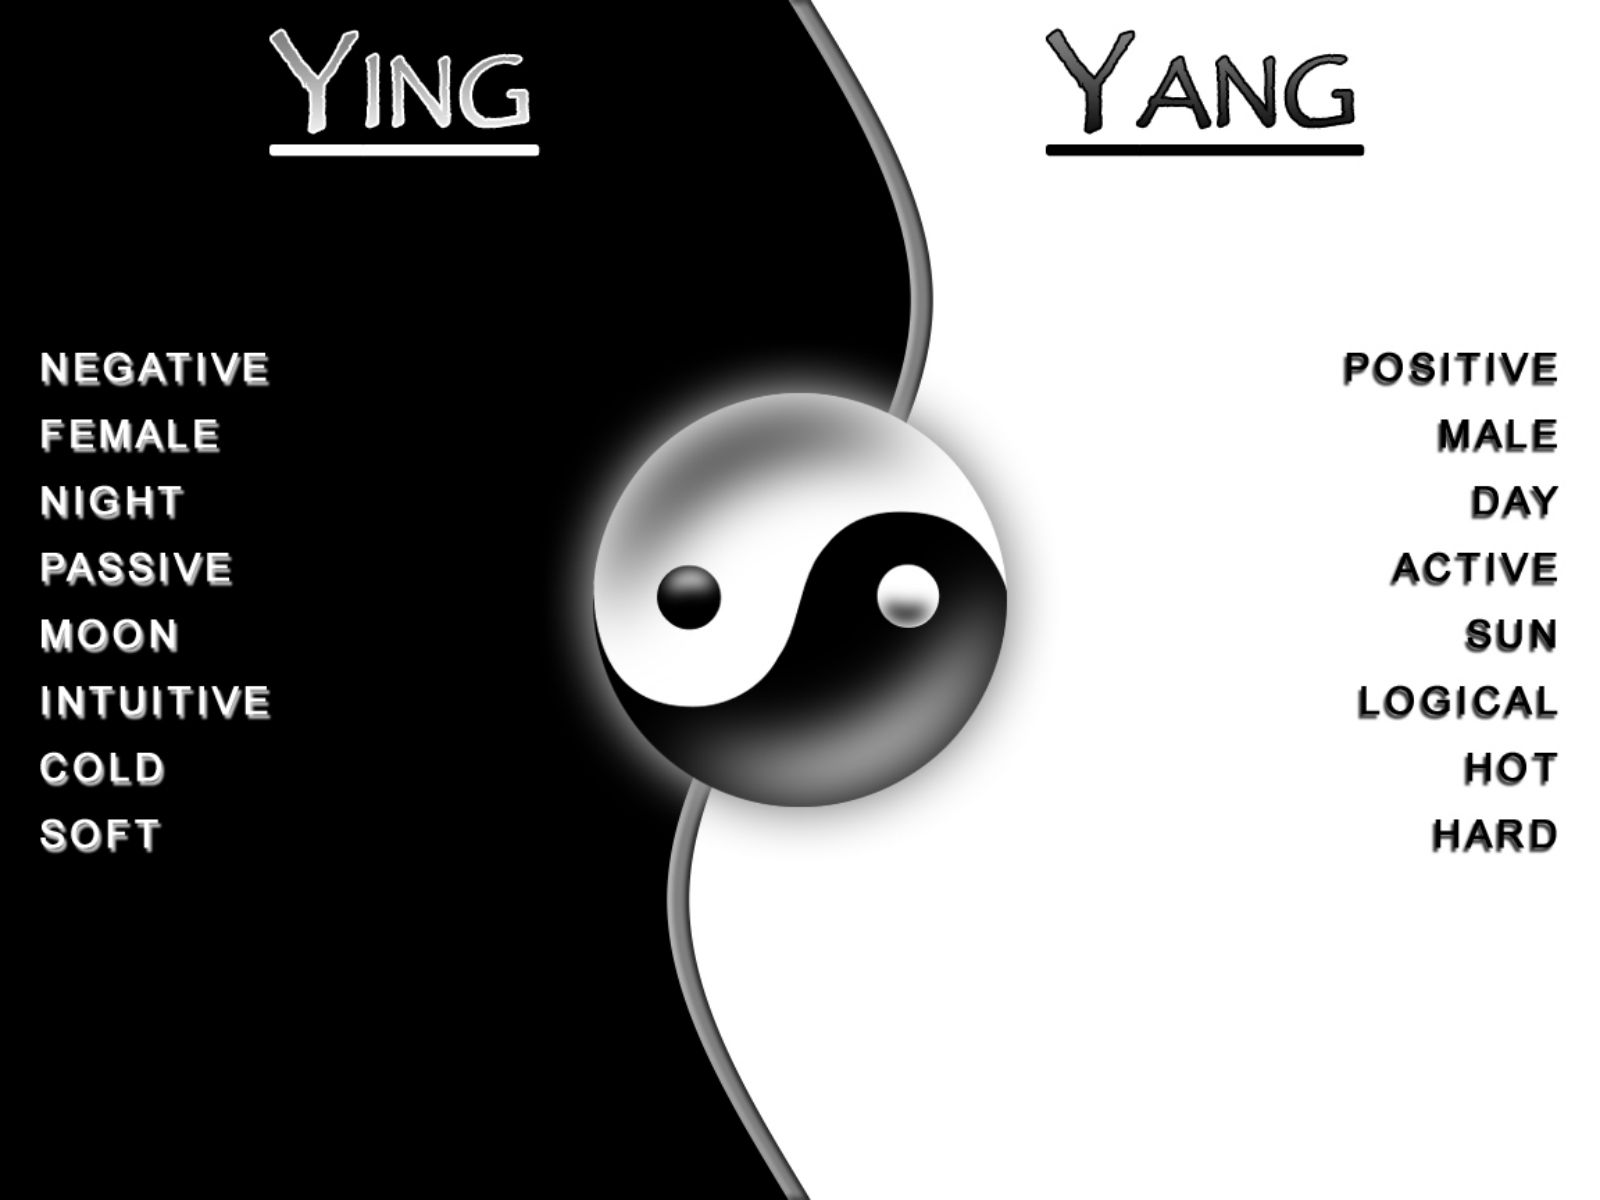 Yin And Yang Meaning Far East Philosophy Ying Yang Meaning Hd Desktop Wallpapers Ying Yang Symbol Yin Yang Ying Yang